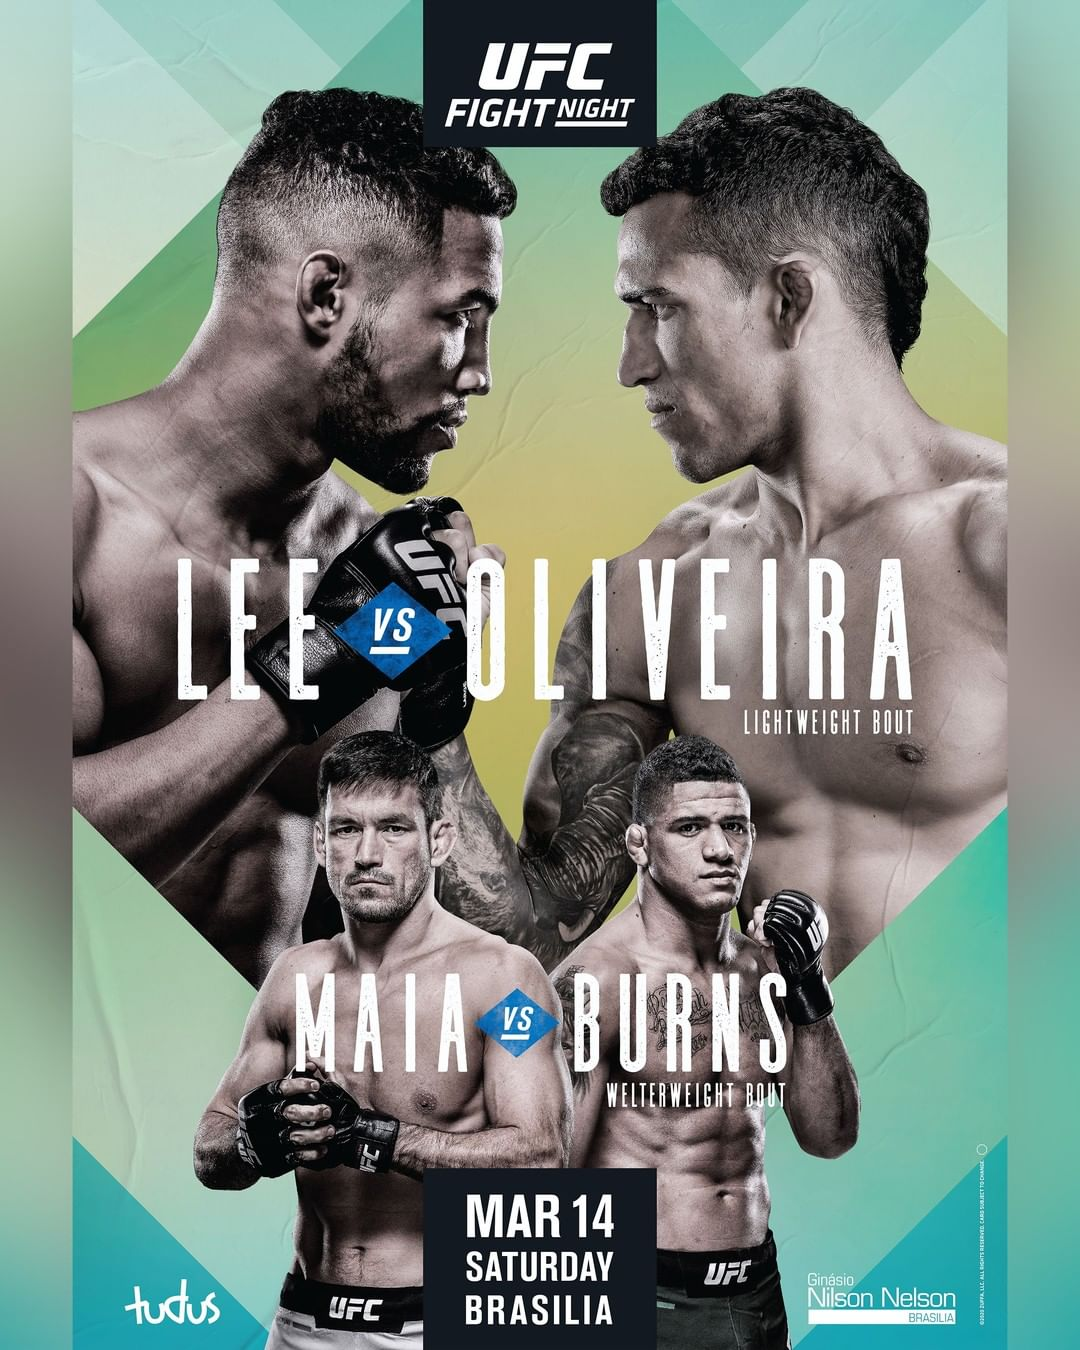 UFC Fight Night 170 results poster